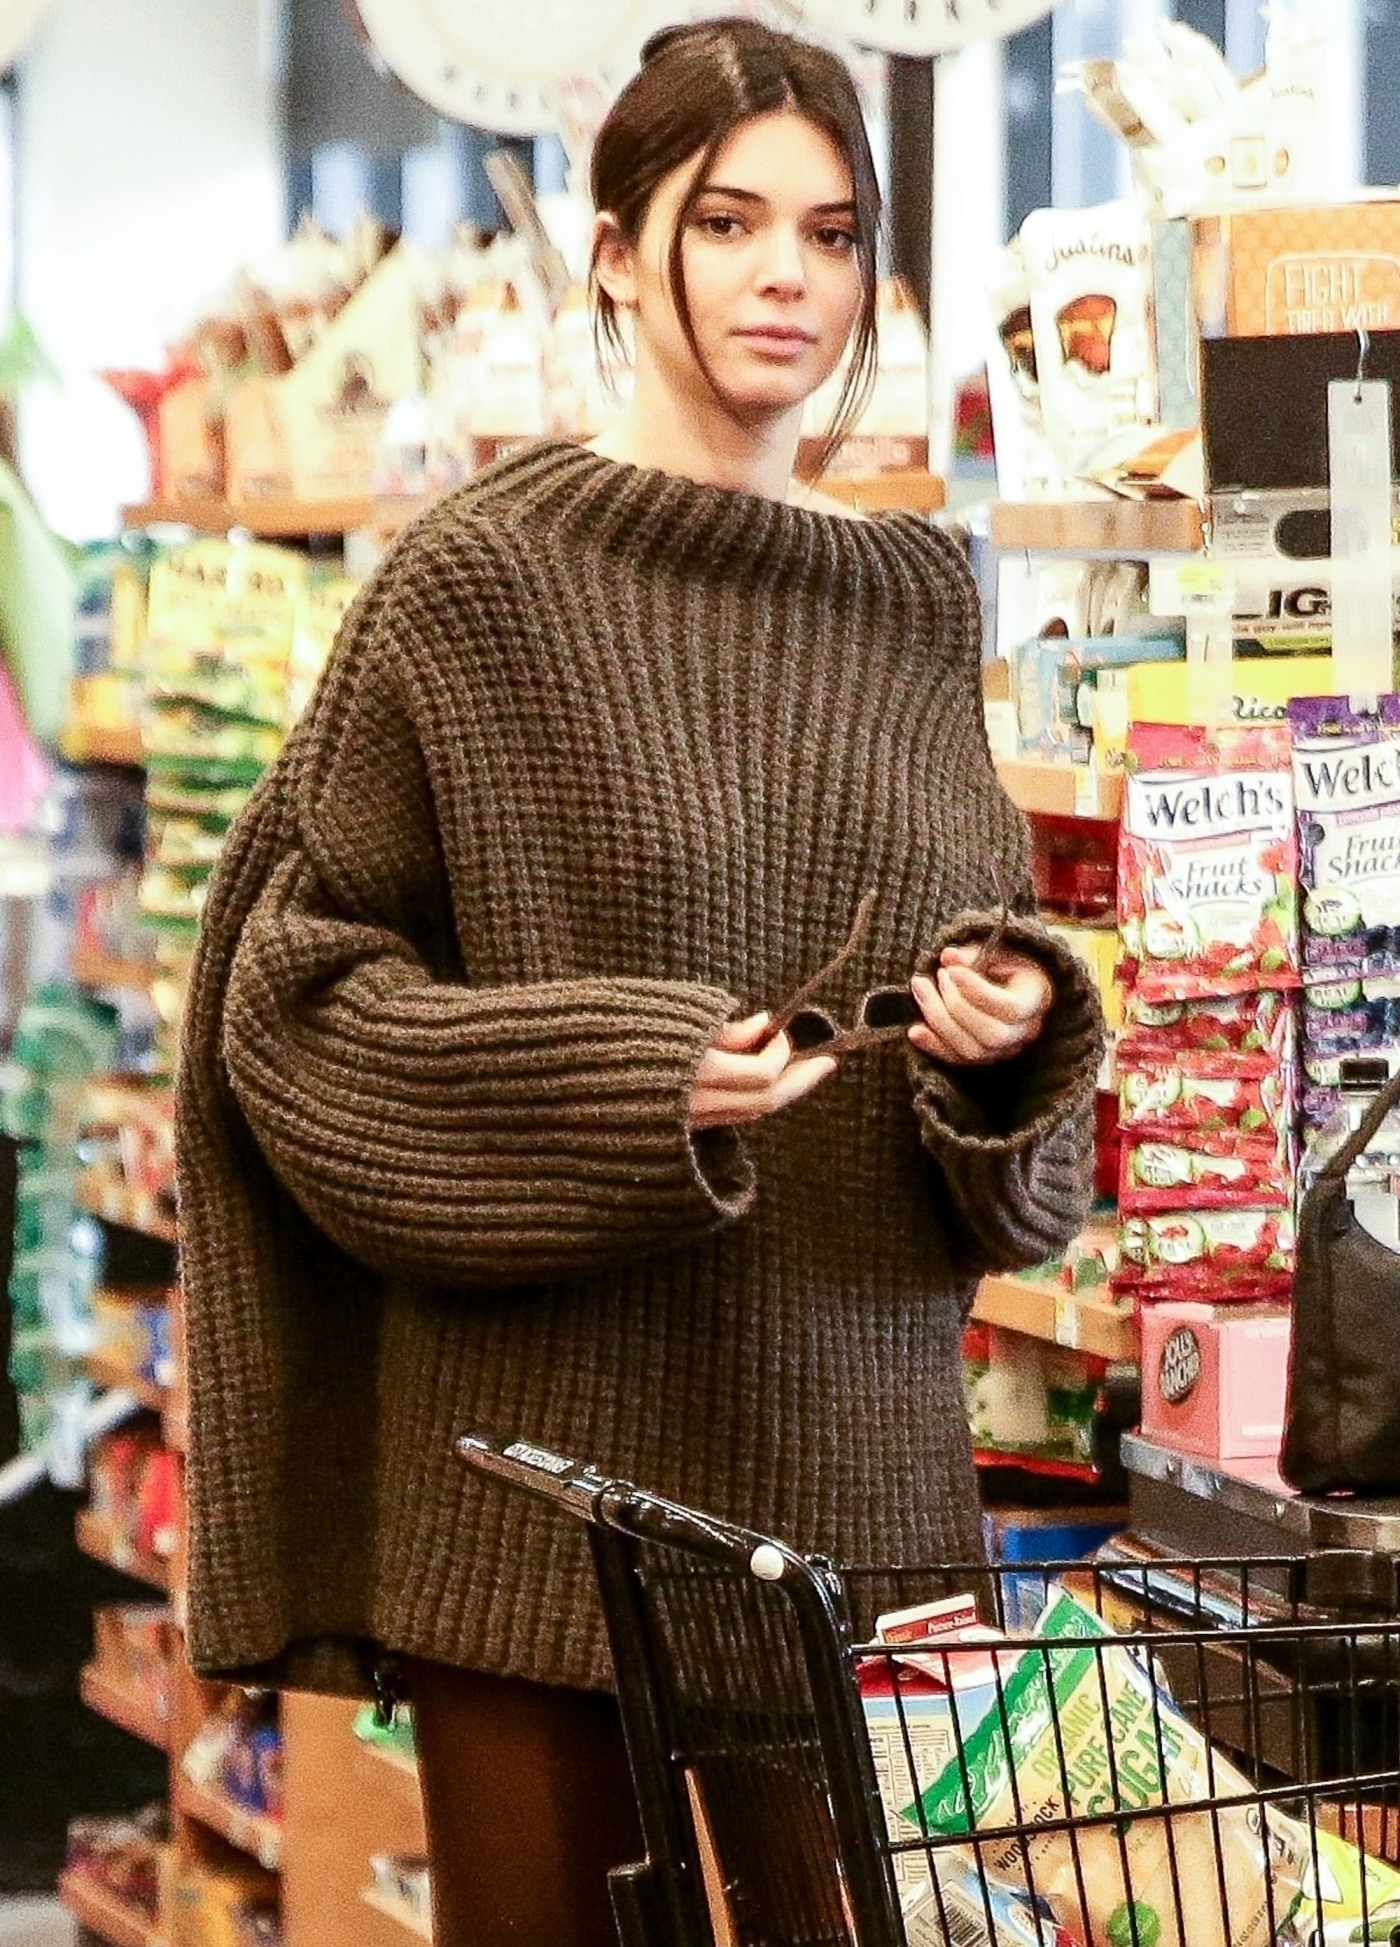 Kendall Jenner & Hailey Baldwin go grocery shopping while other models walk the runway for NYFW